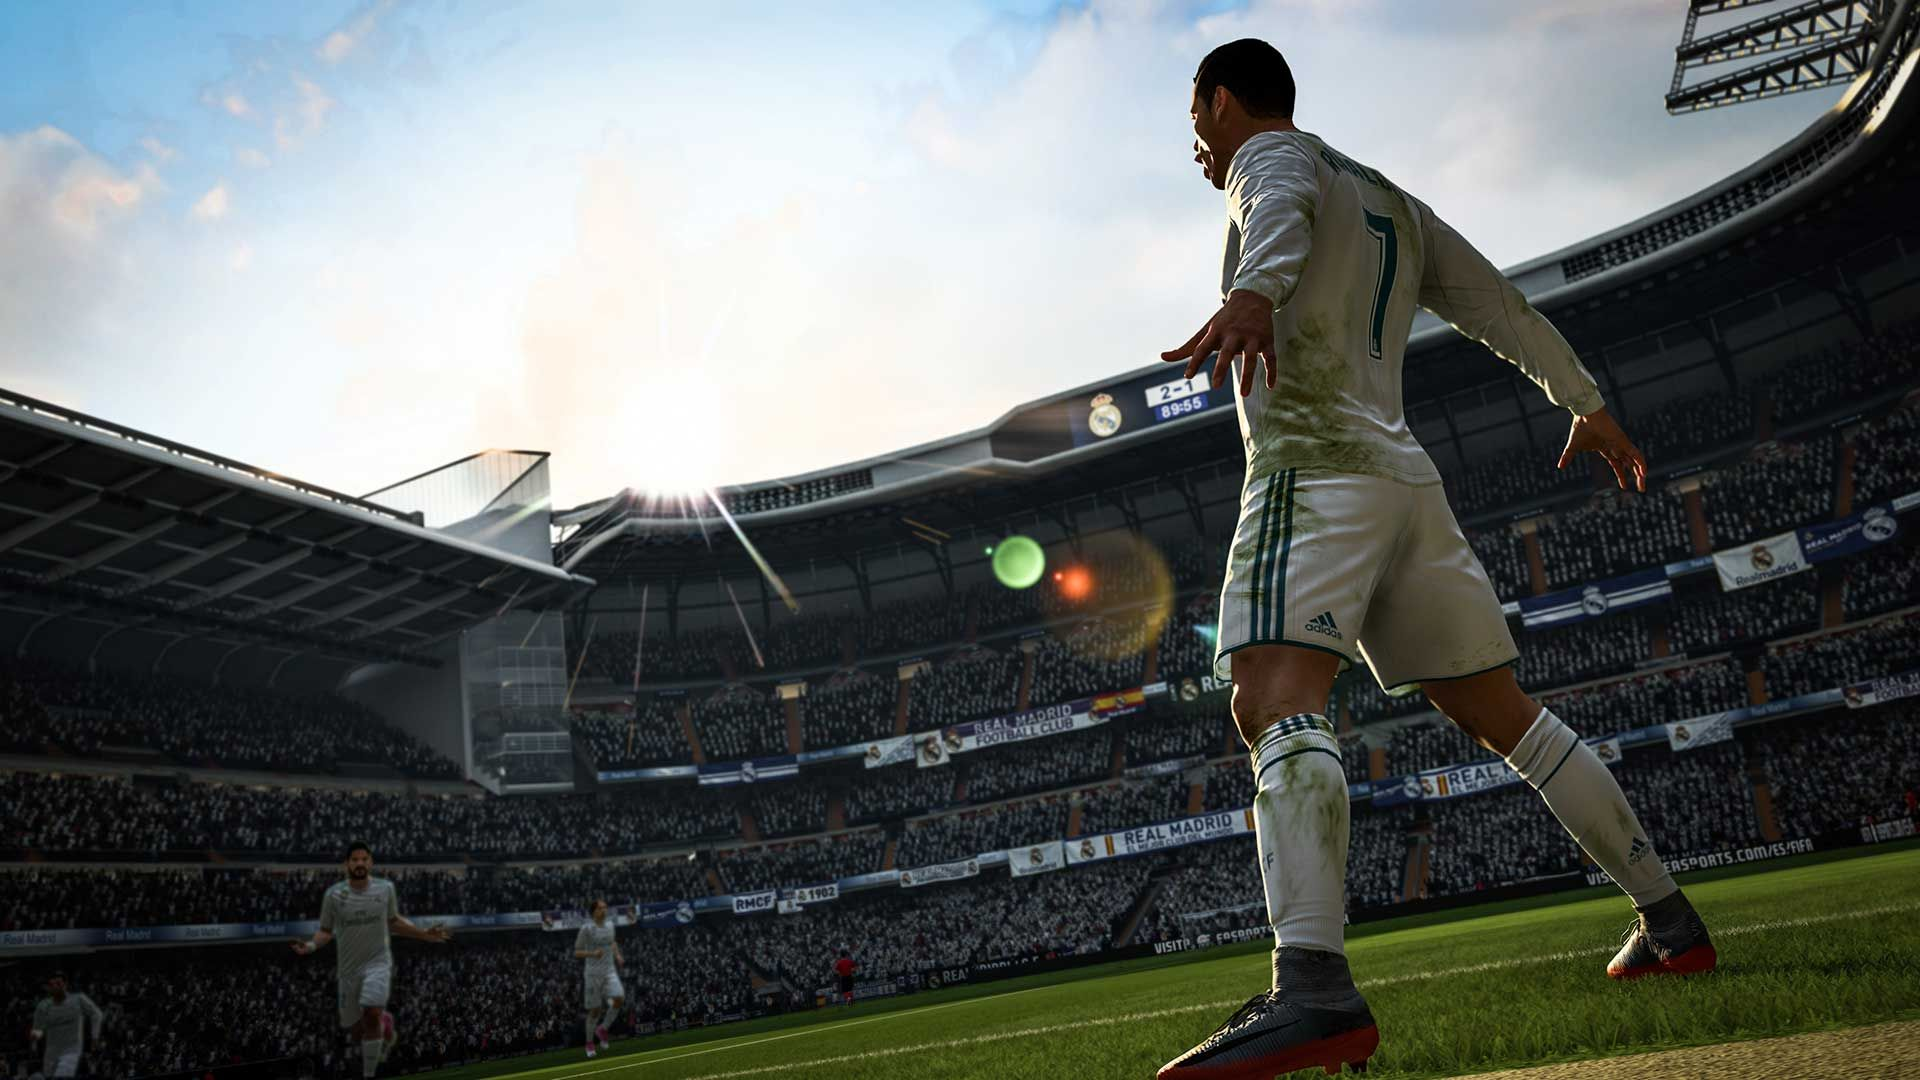 download fifa 18 icon editio cracked by steampunks sports online co-op games include all dlc and latest update mirrorace multiup